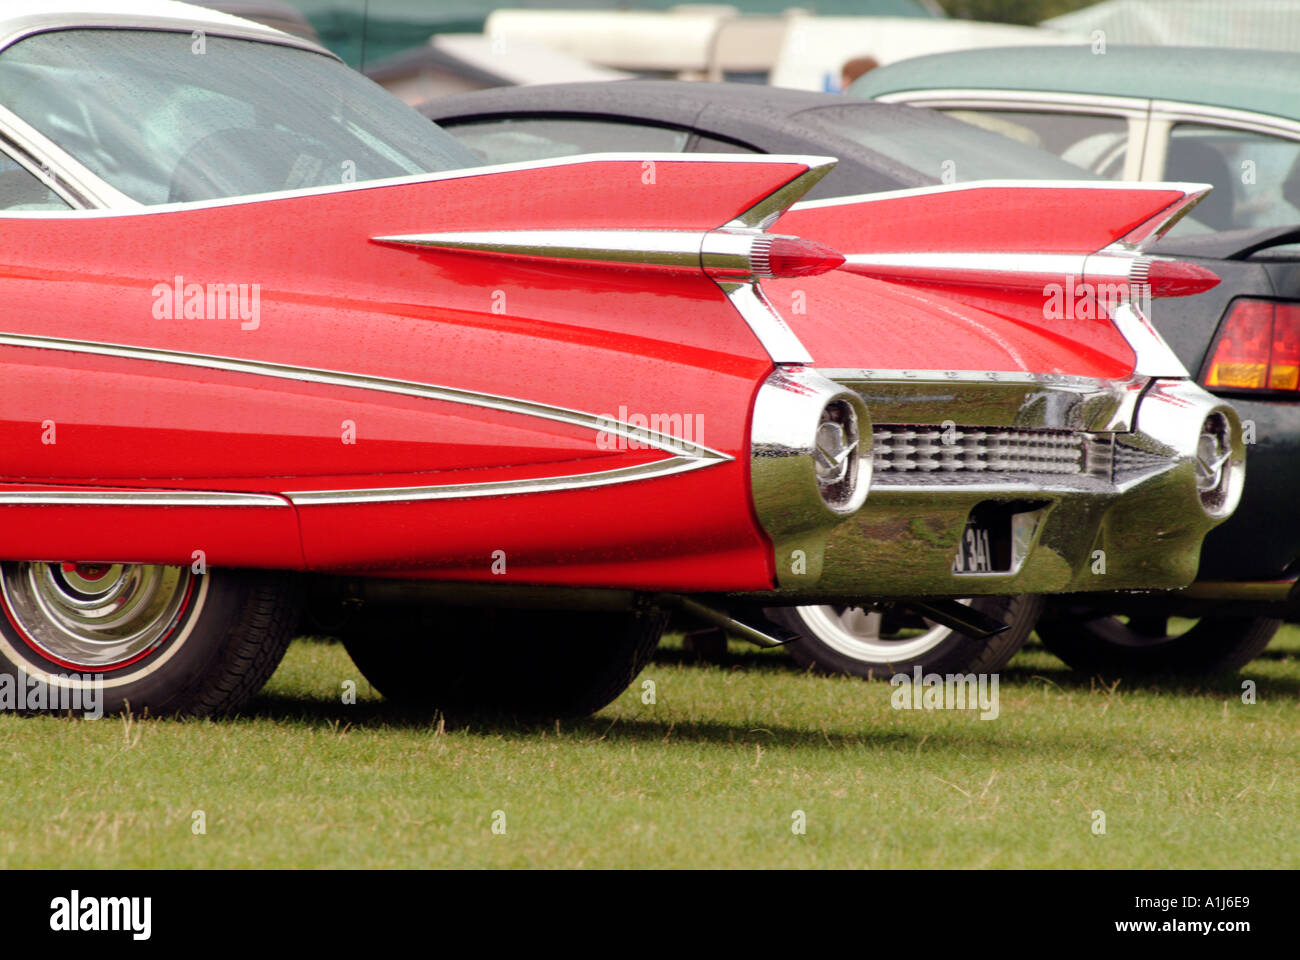 Cadillac Car Tail Fins Stock Photos Cadillac Car Tail Fins Stock